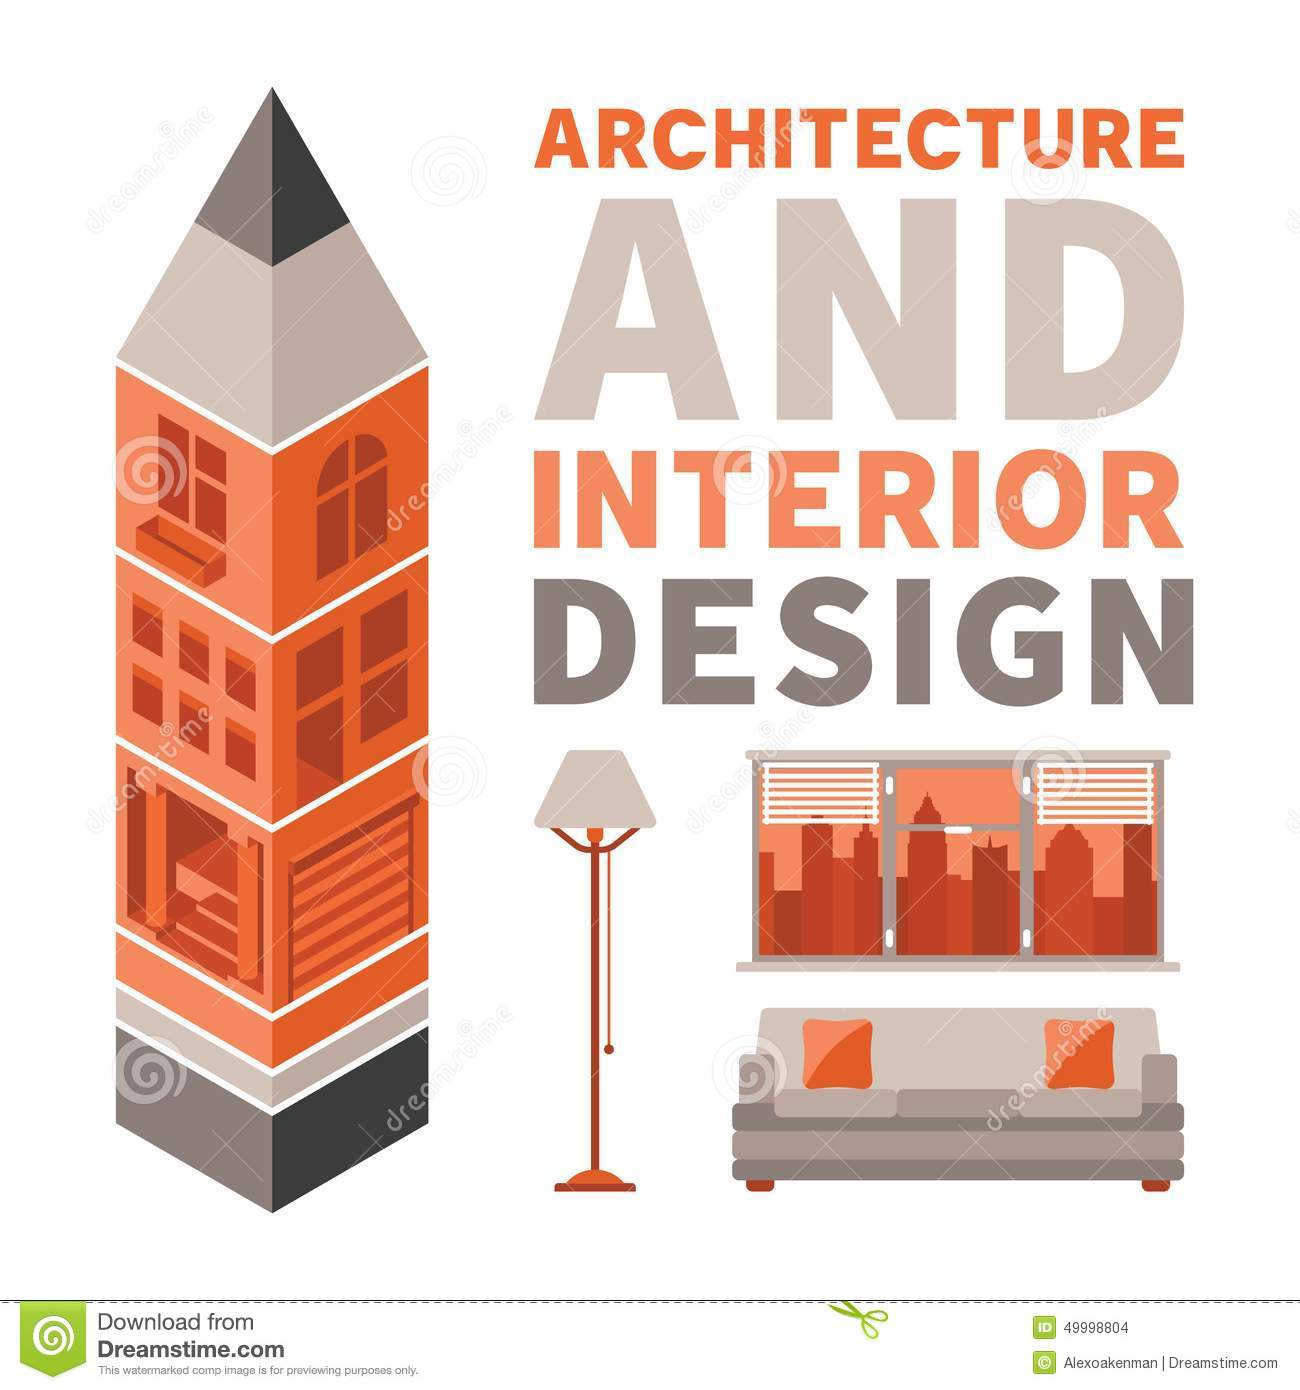 12 architecture design vector images architecture for Interior design images vector